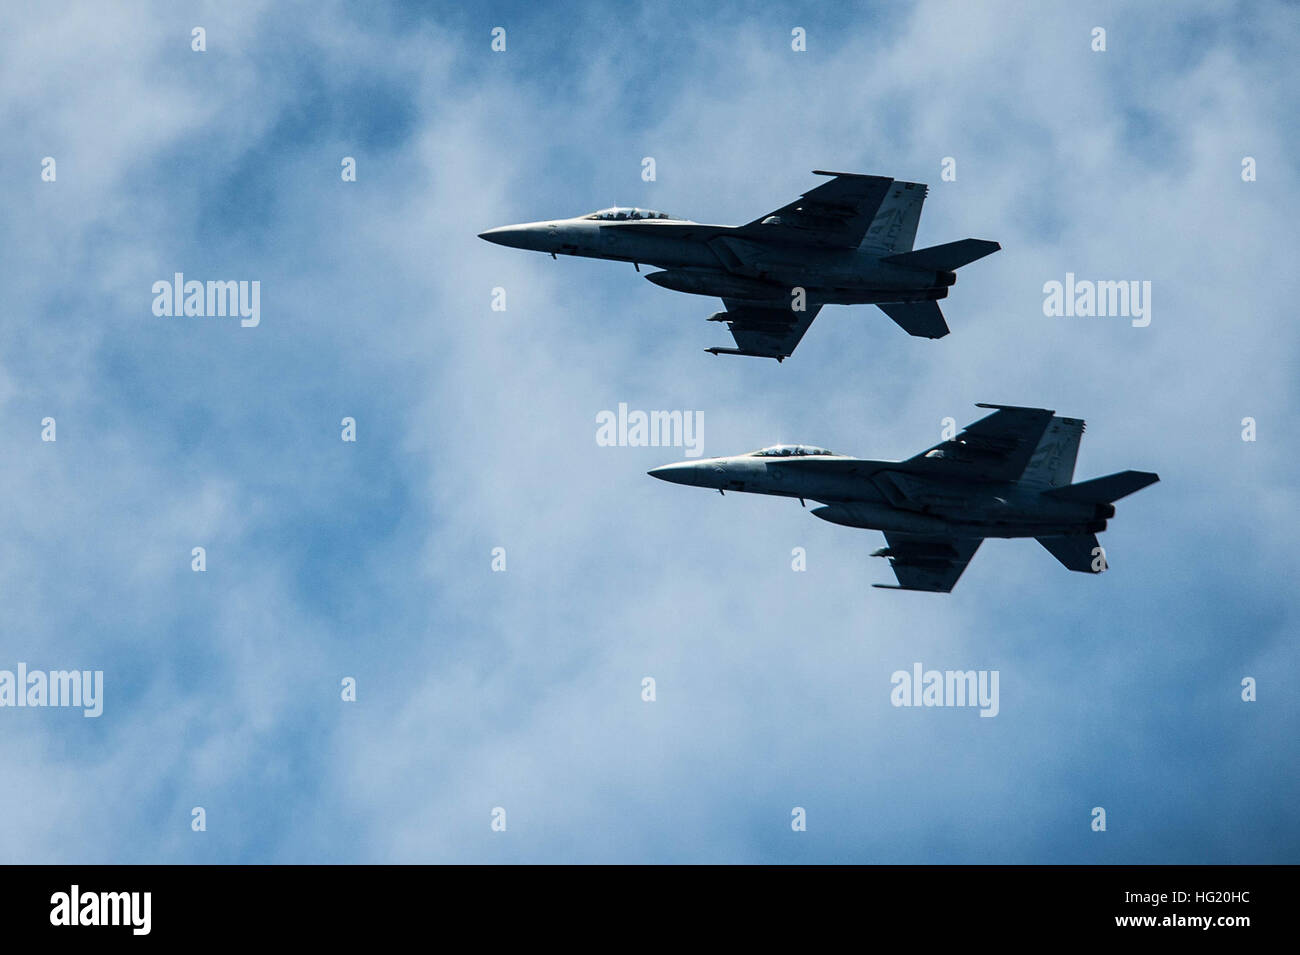 F/A-18 Super Hornets, assigned to Carrier Air Wing (CVW) 2 and embarked on the aircraft carrier USS Ronald Reagan - Stock Image